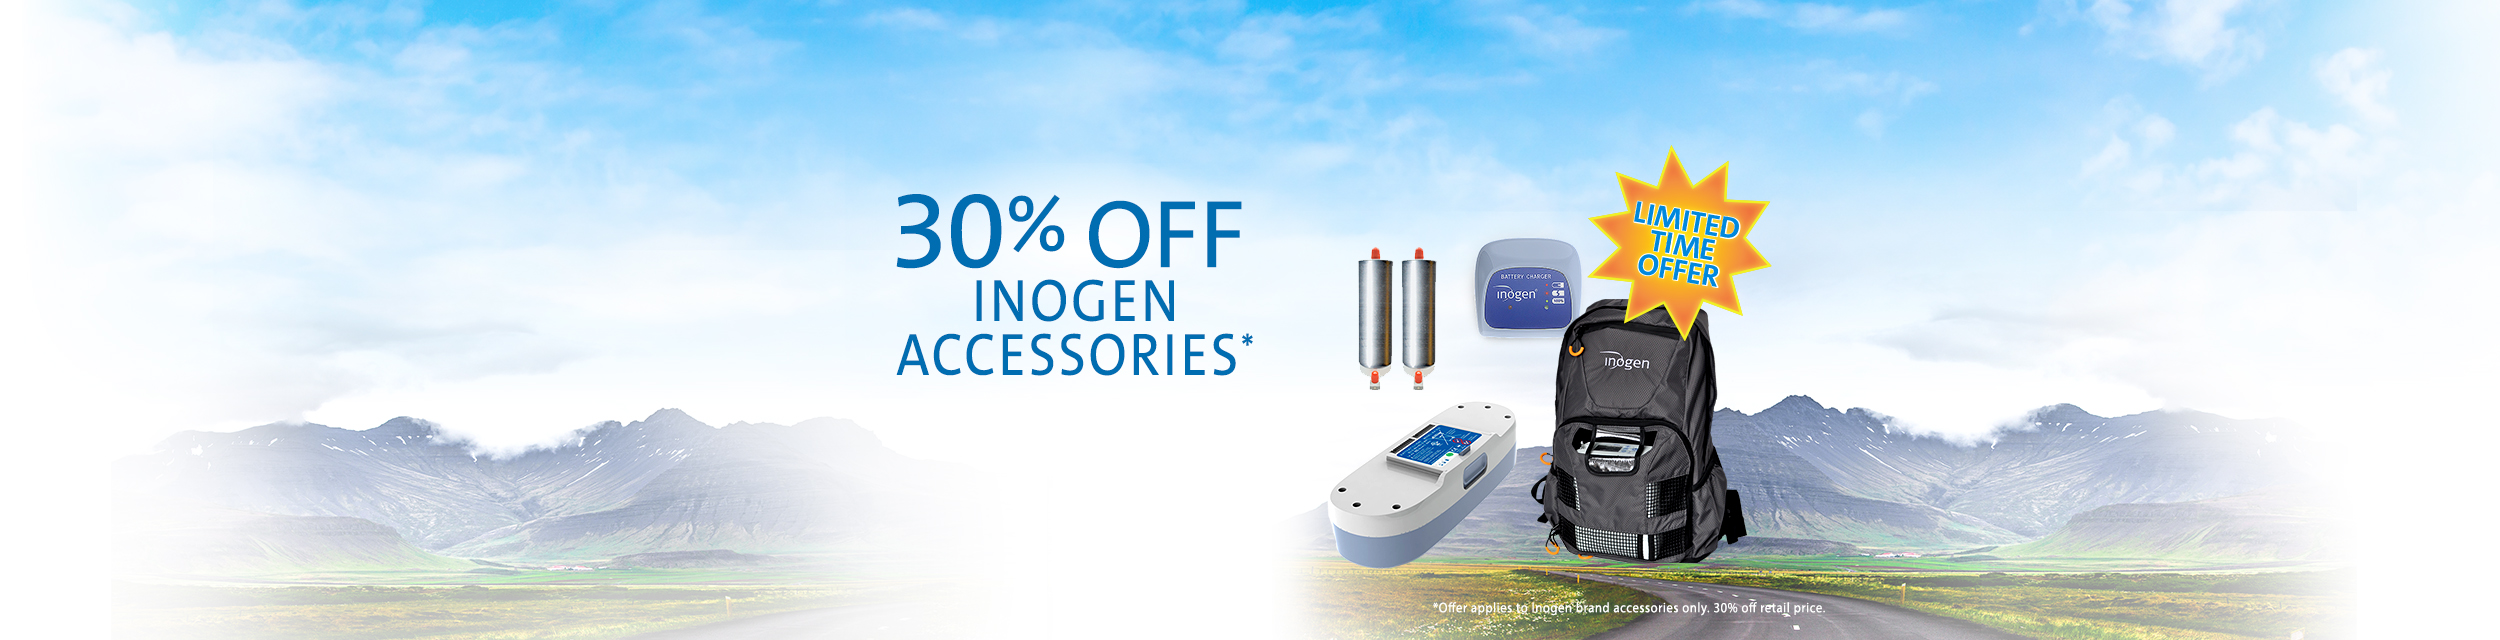 30% off Inogen accessories. Offer applies to Inogen brand accessories only.